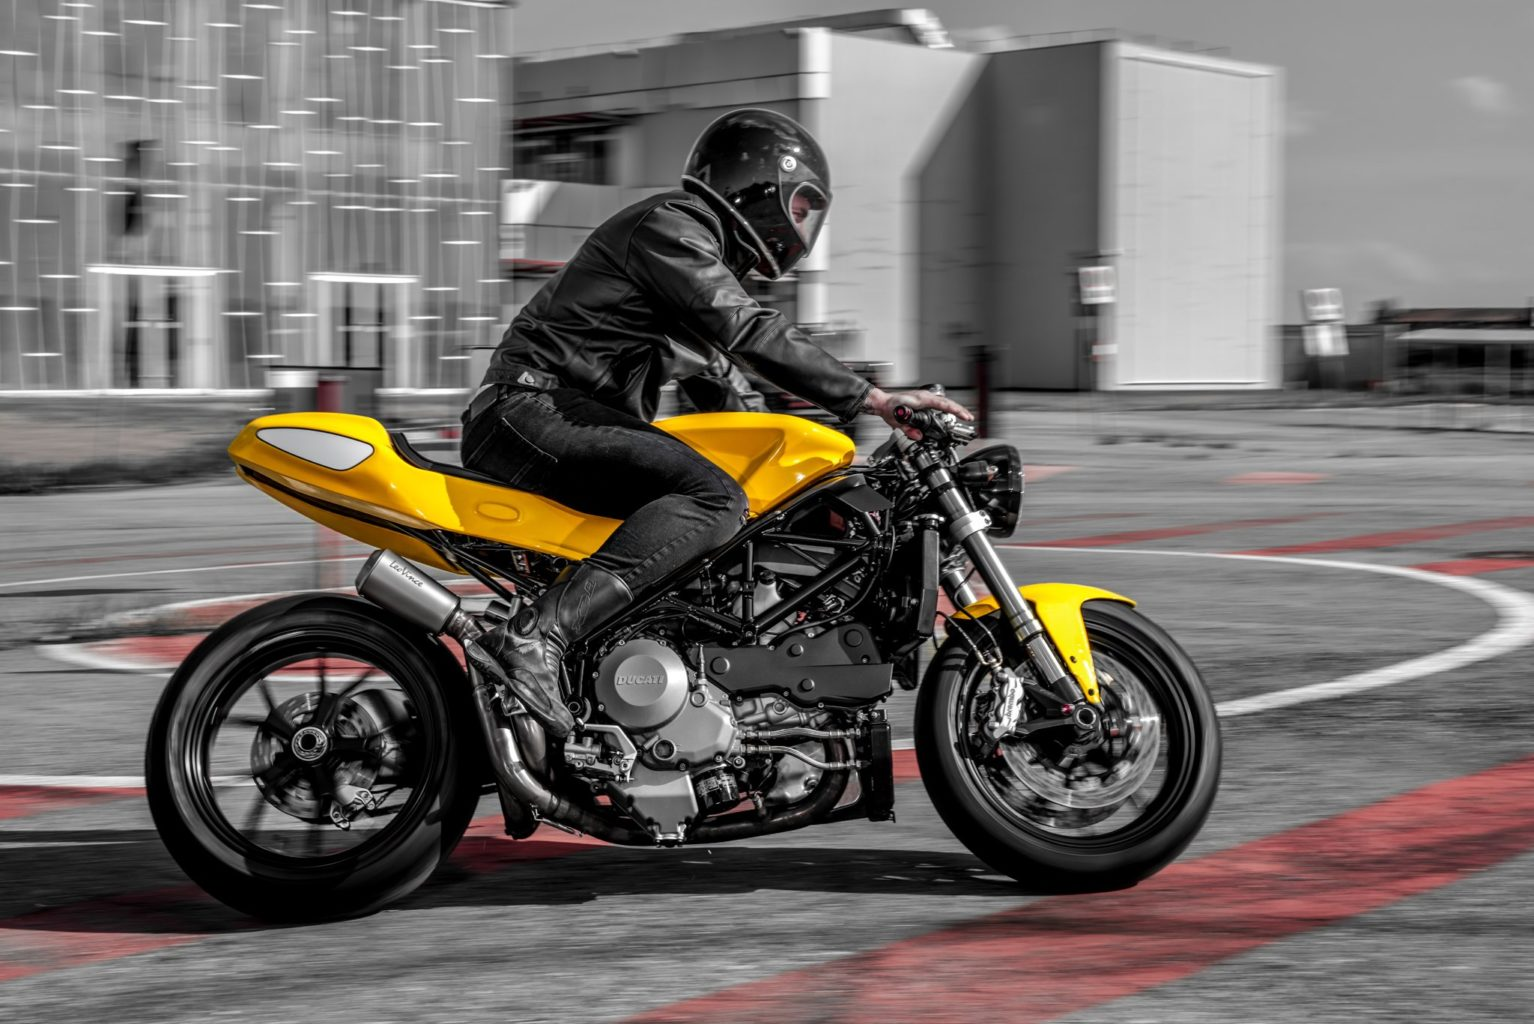 Ducati 848 by Officina Ricci